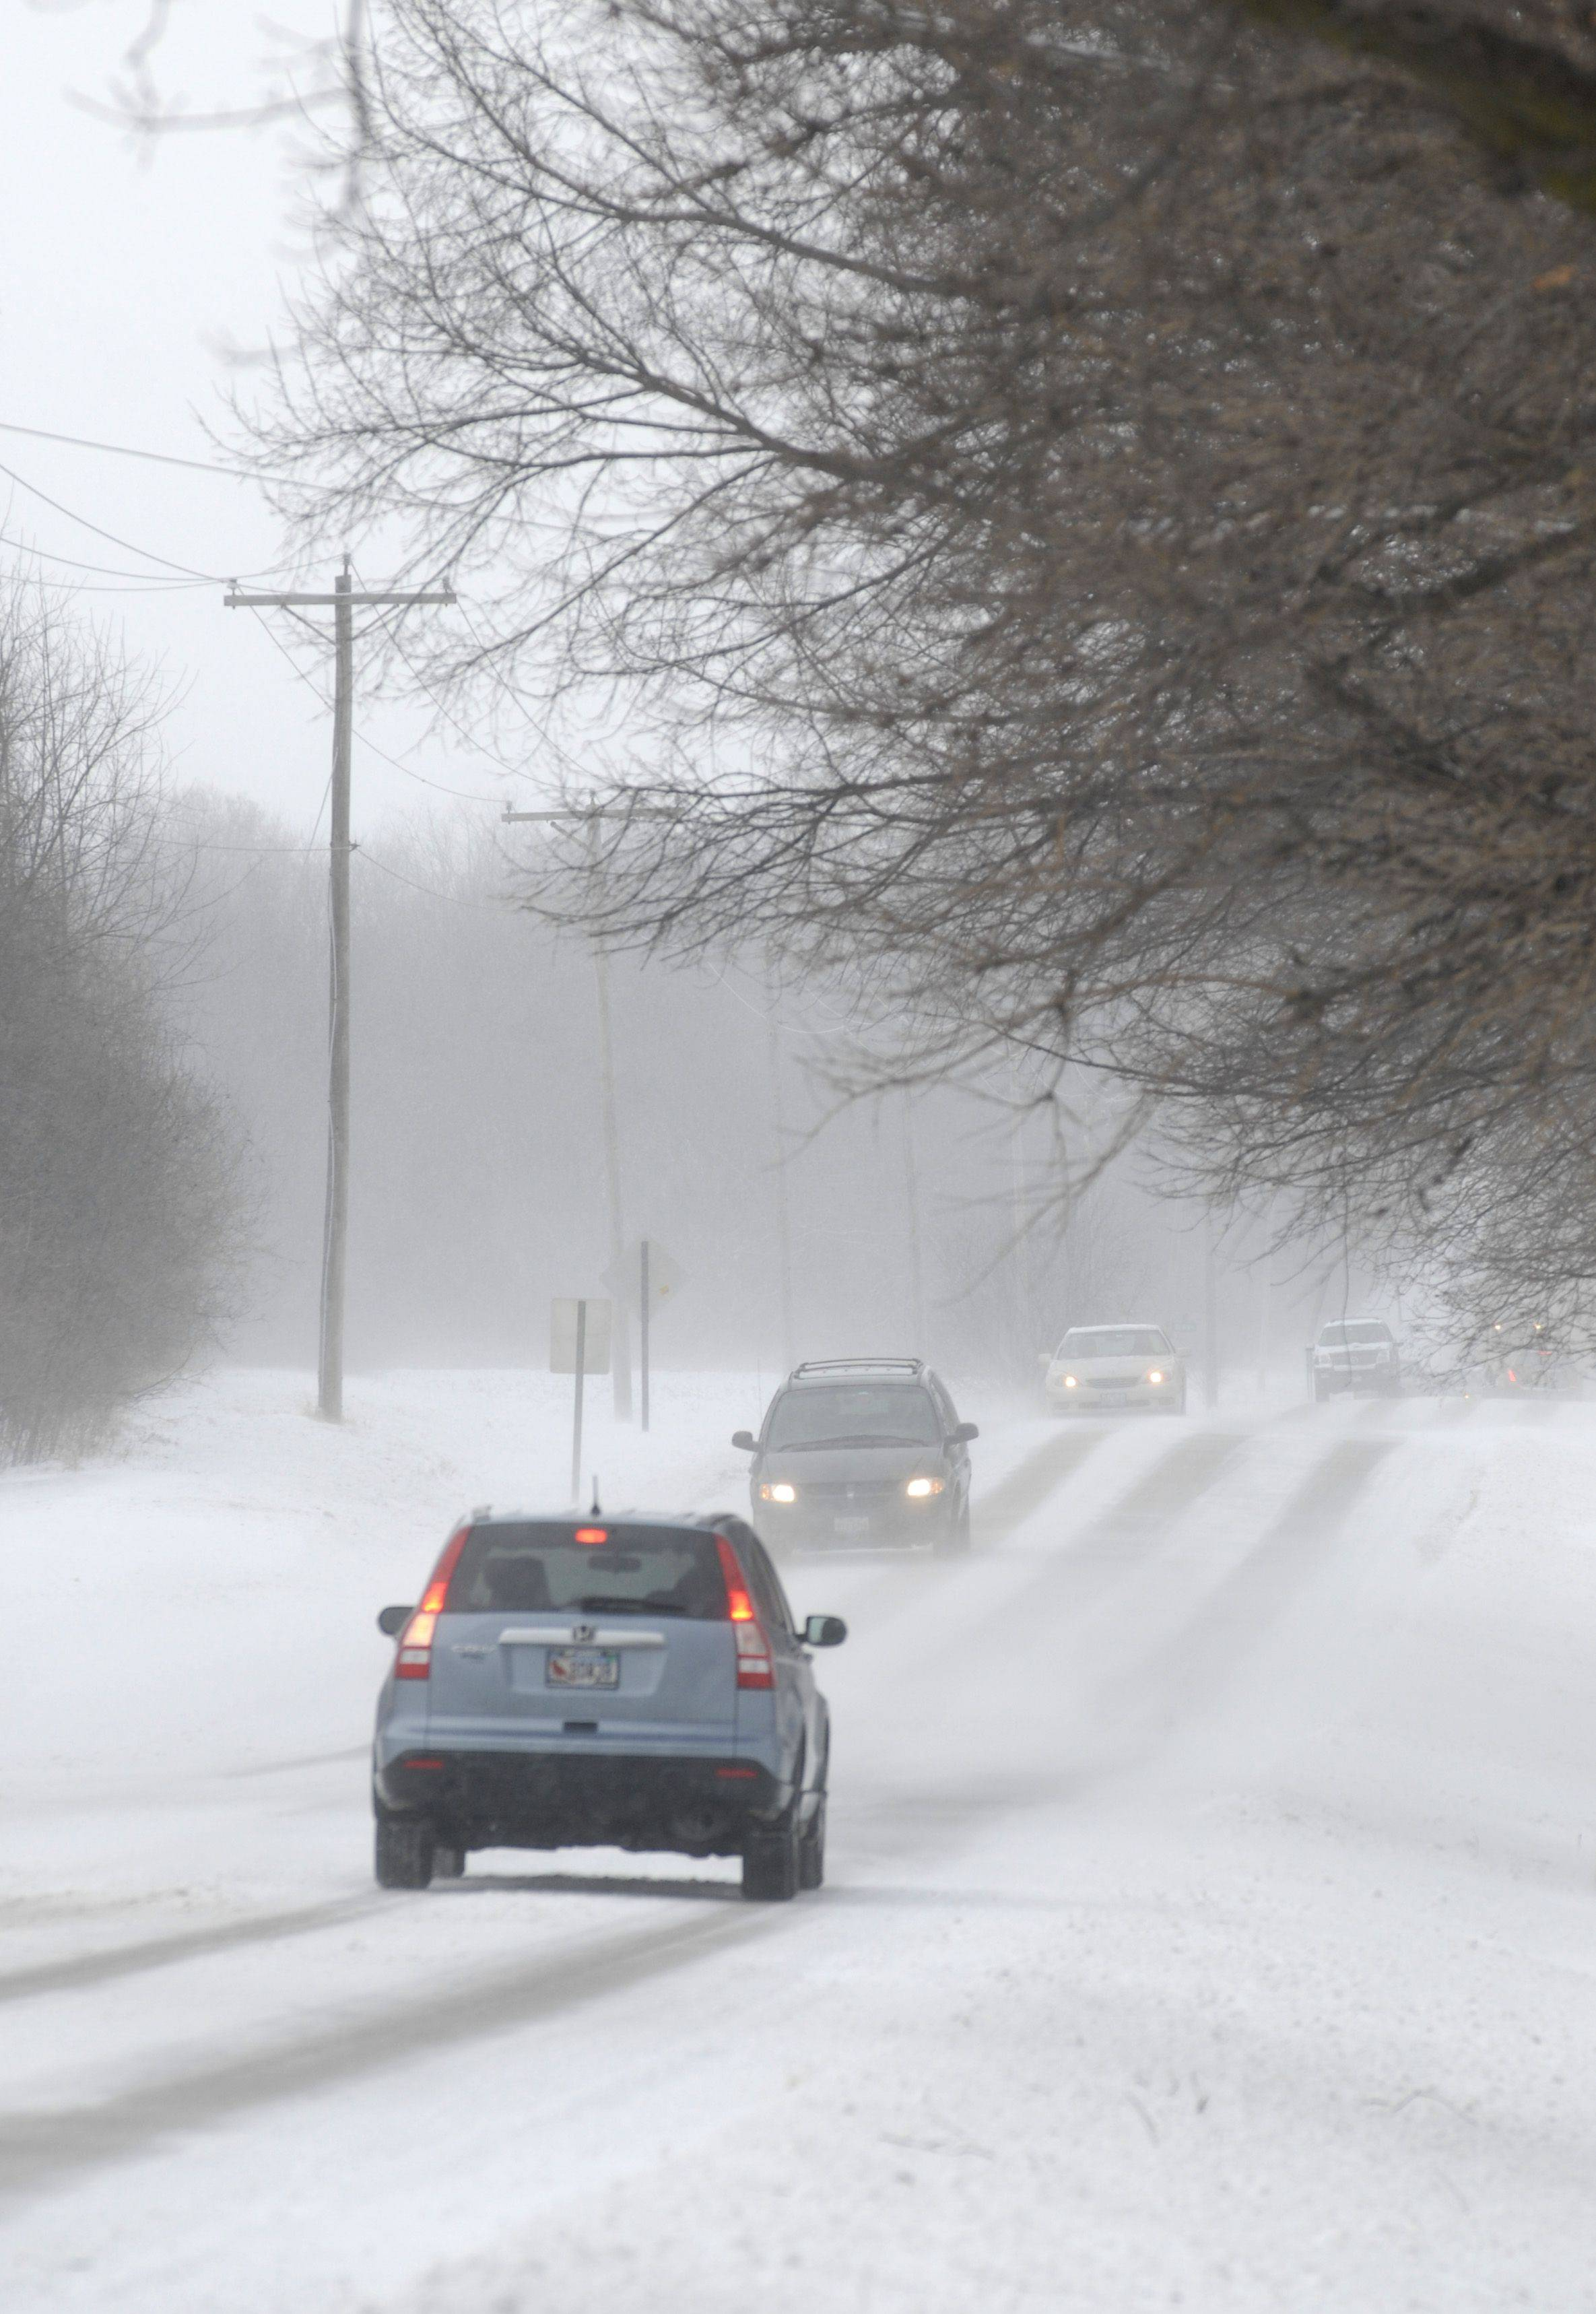 Blowing snow was creating snow drifts and reducing visibility for airline pilots and also creating a foggy haze for drivers on Dean Street in St. Charles Sunday afternoon.